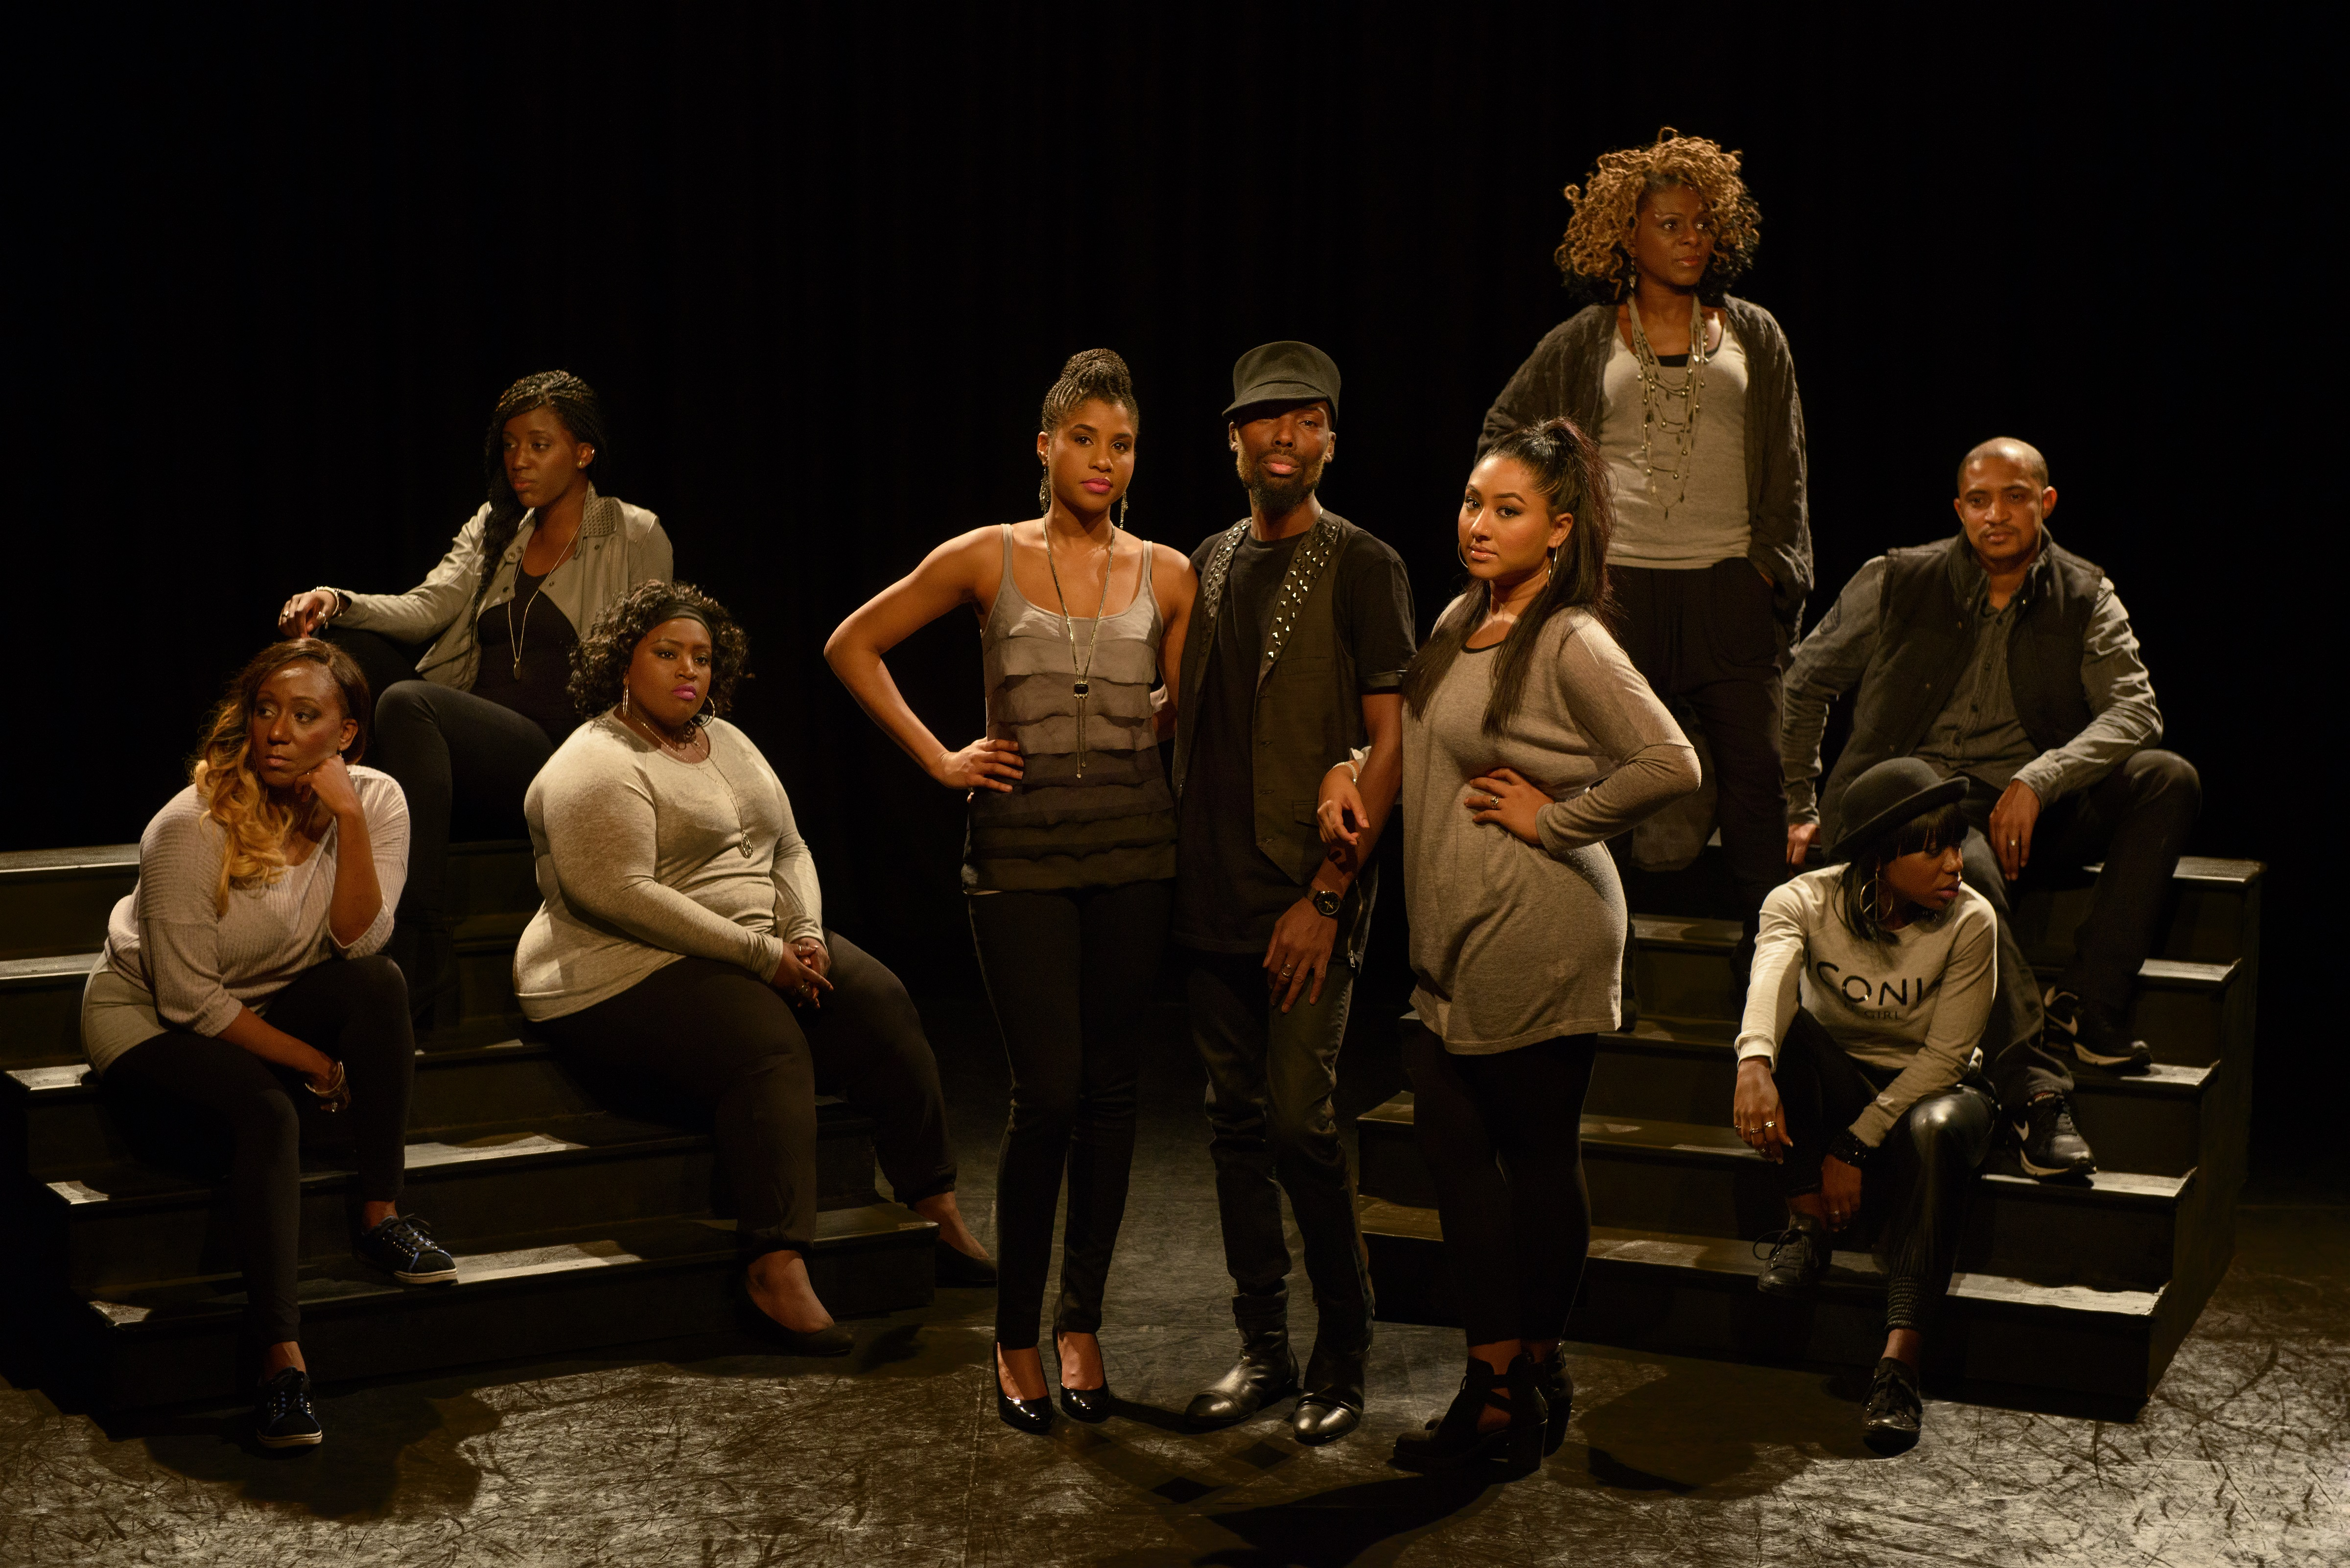 London Community Gospel Choir: Coming Home at St Mary's Music Hall